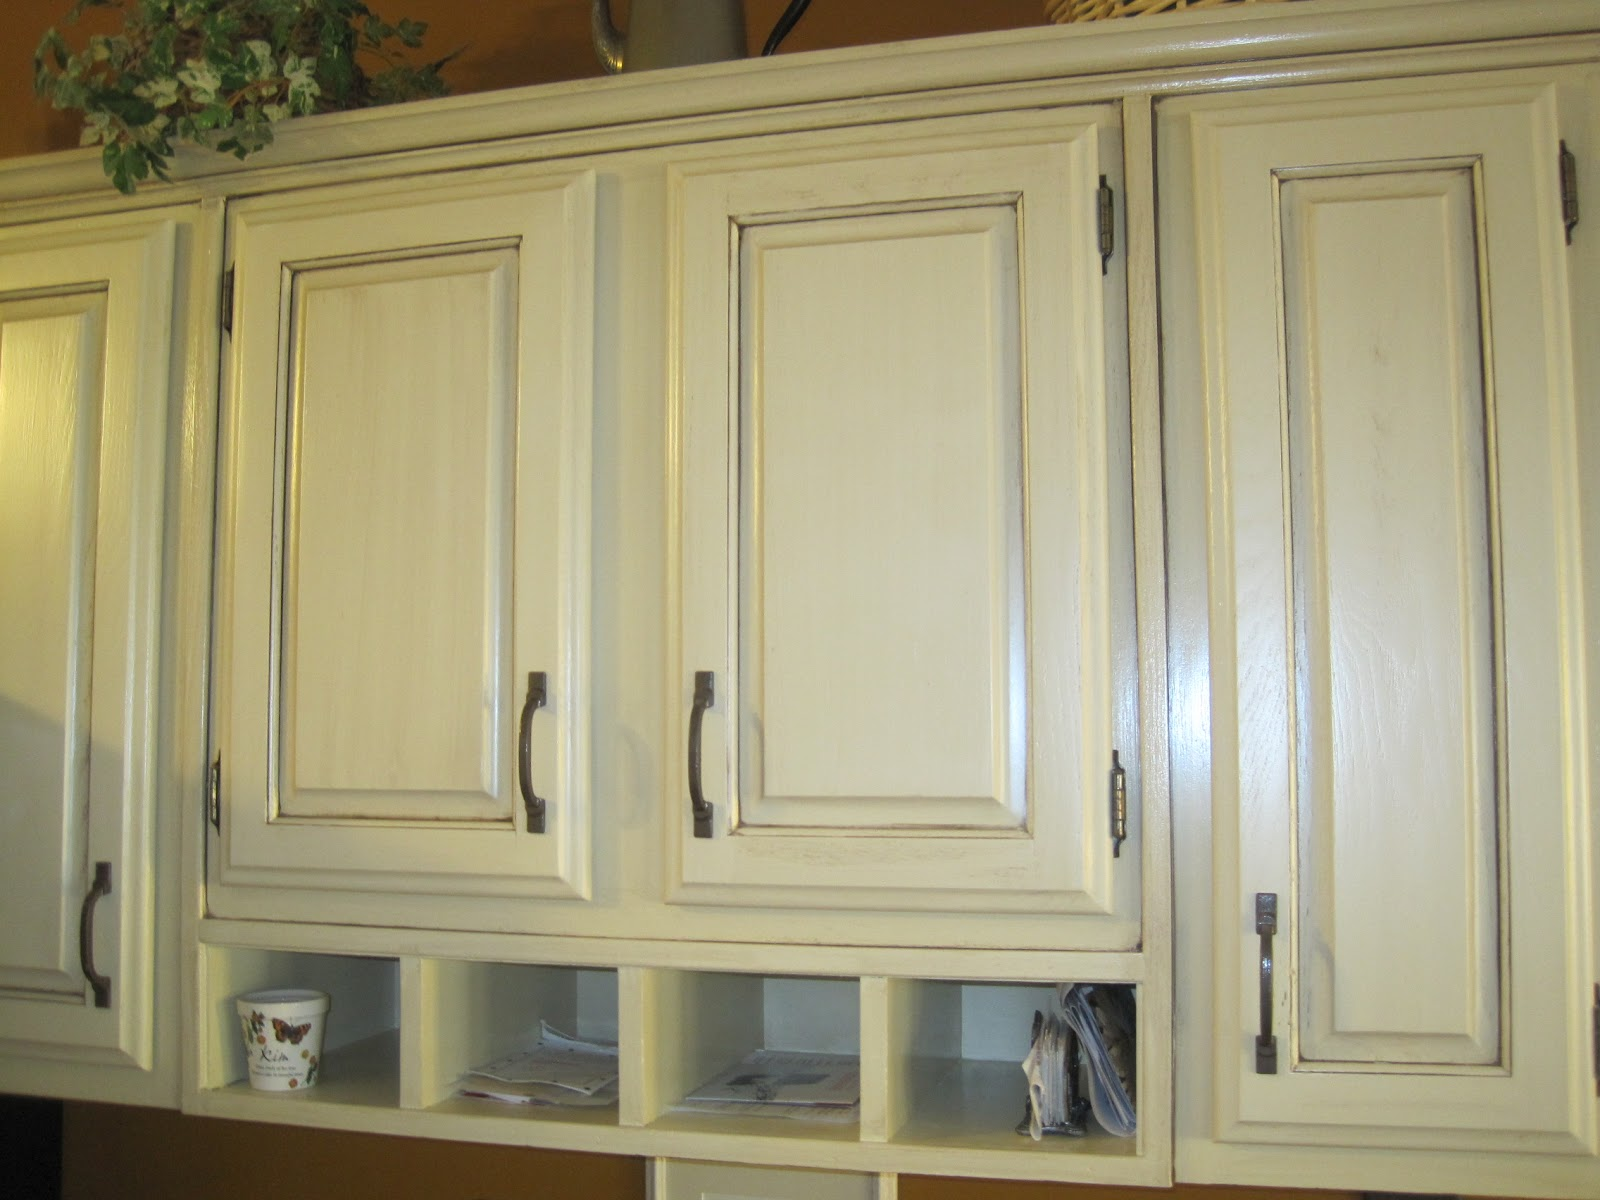 Mad mary 39 s junk yard my friend and i refinish kitchen and bathroom cabinets these were before - How to glaze kitchen cabinets that are painted ...